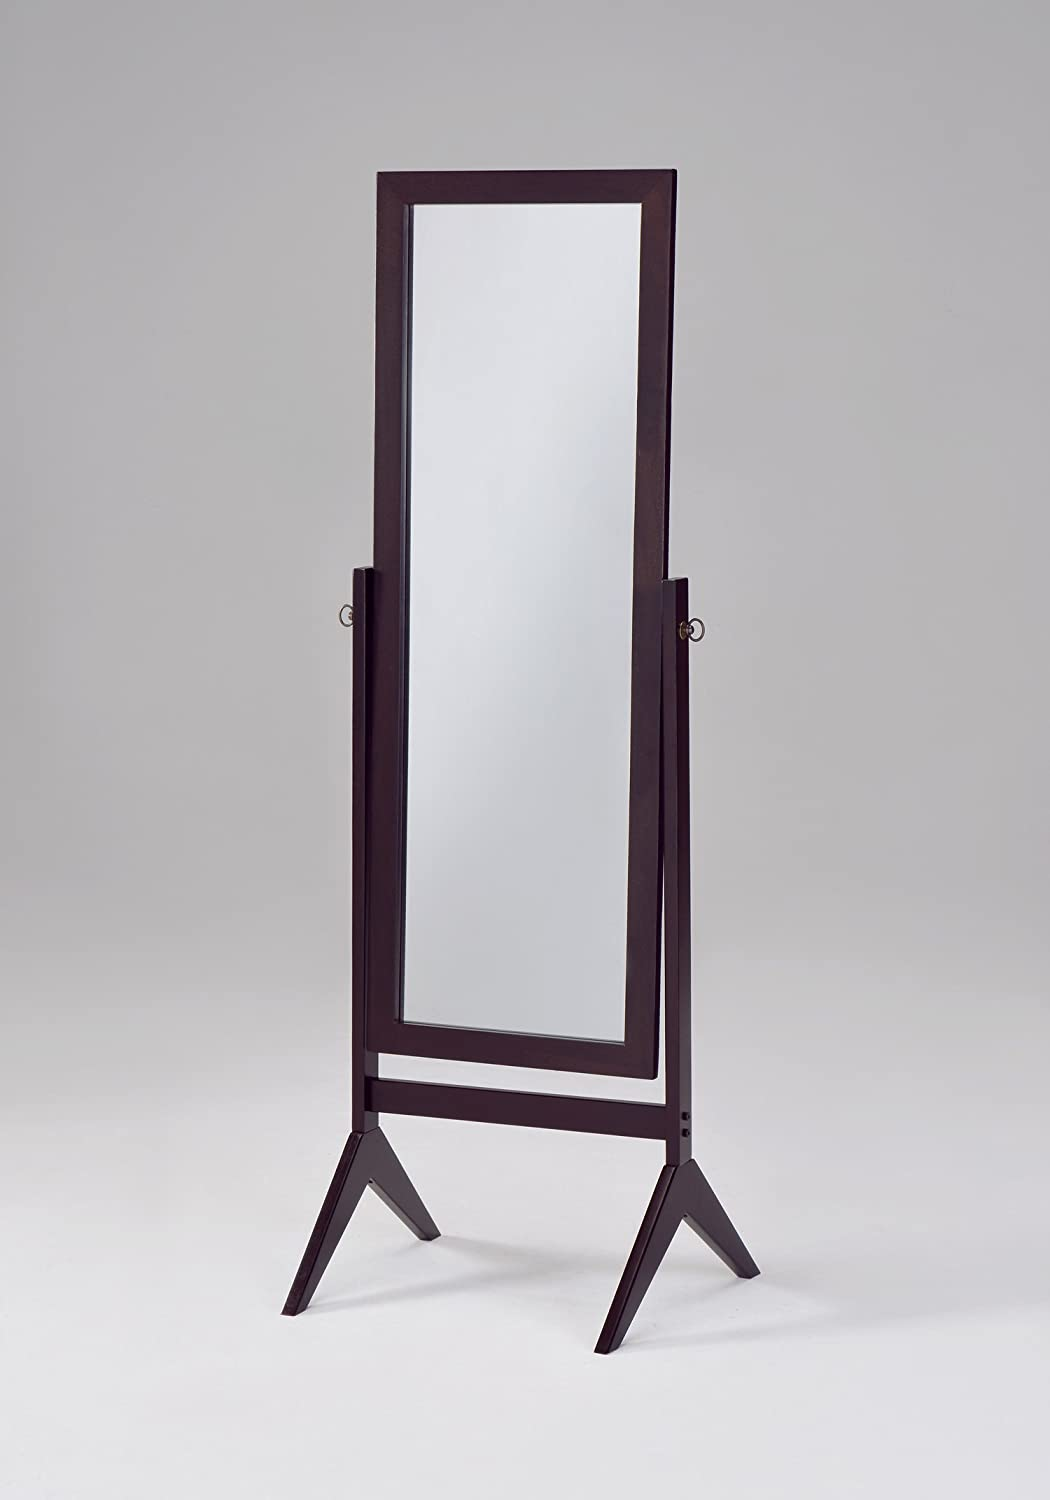 Floor dressing mirror full length body cheval tilt free for Full length mirror black frame